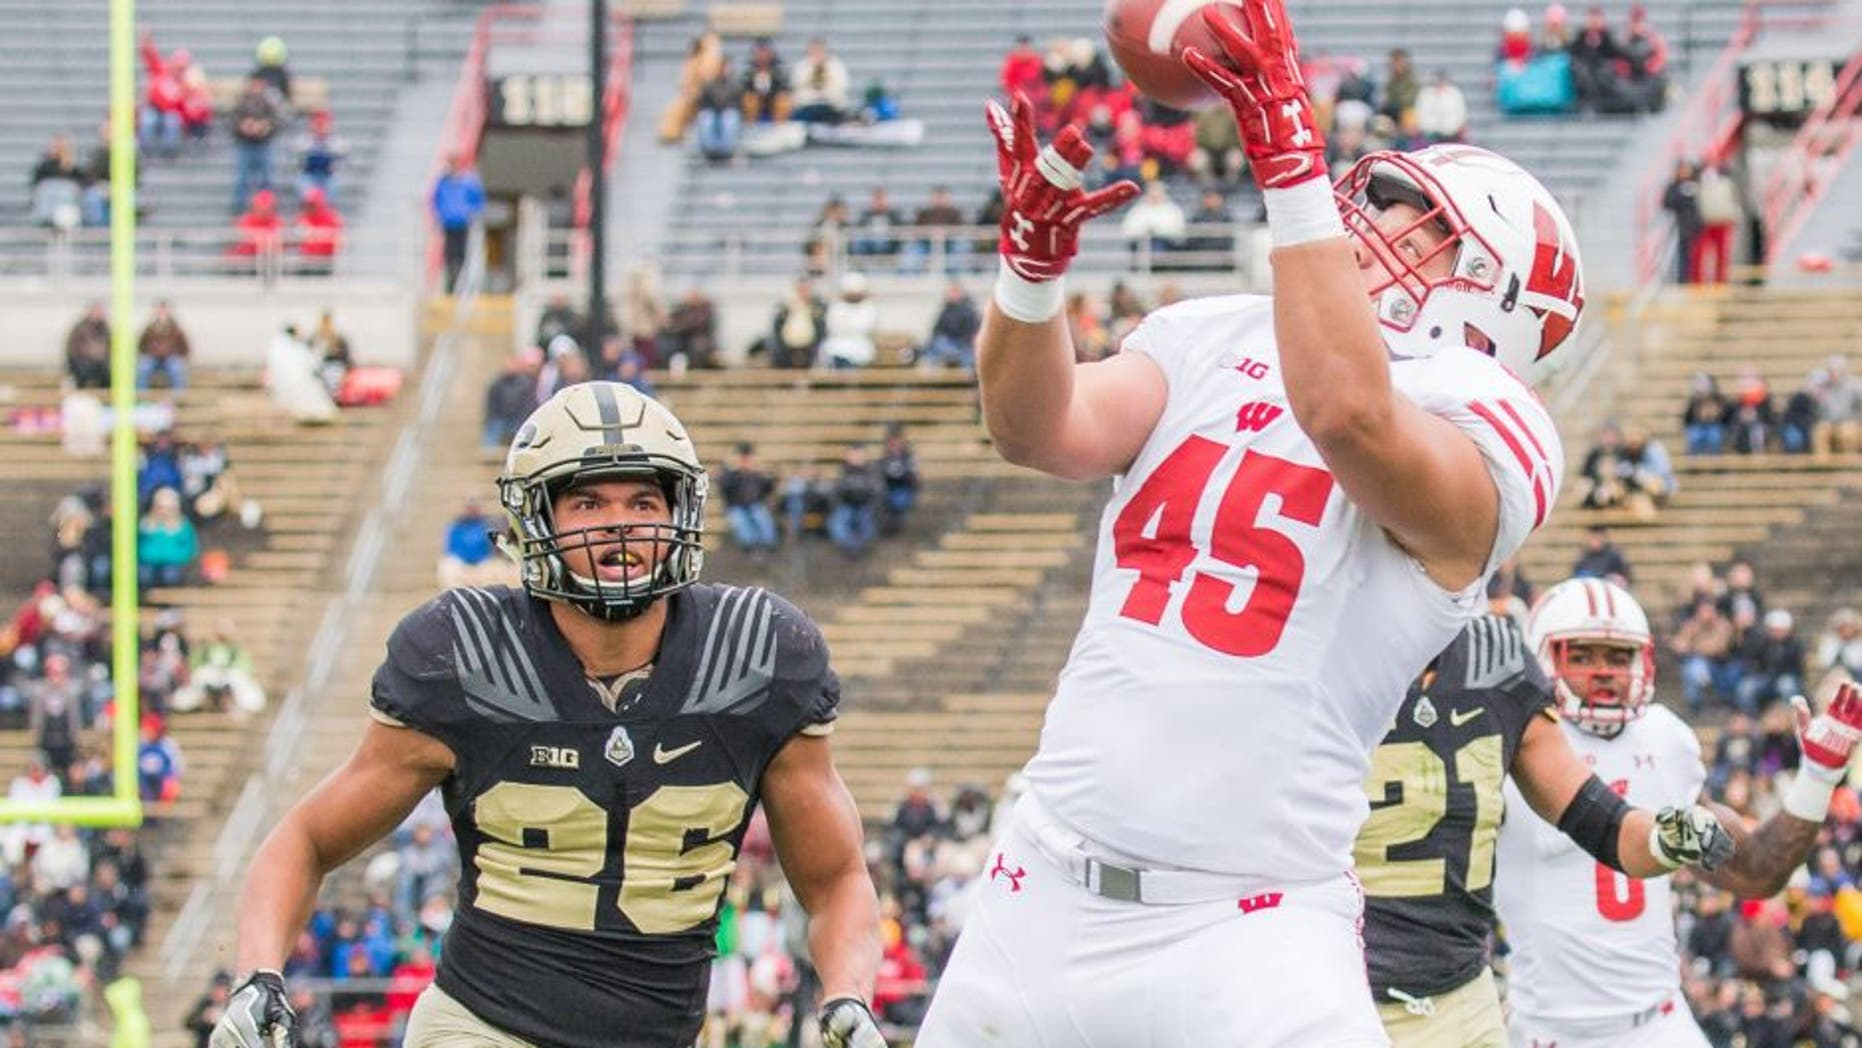 Nov 19, 2016; West Lafayette, IN, USA; Wisconsin Badgers fullback Alec Ingold (45) scores a touchdown while Purdue Boilermakers safety C.J. Parker (26) defends in the second quarter of the game at Ross Ade Stadium. Mandatory Credit: Trevor Ruszkowski-USA TODAY Sports